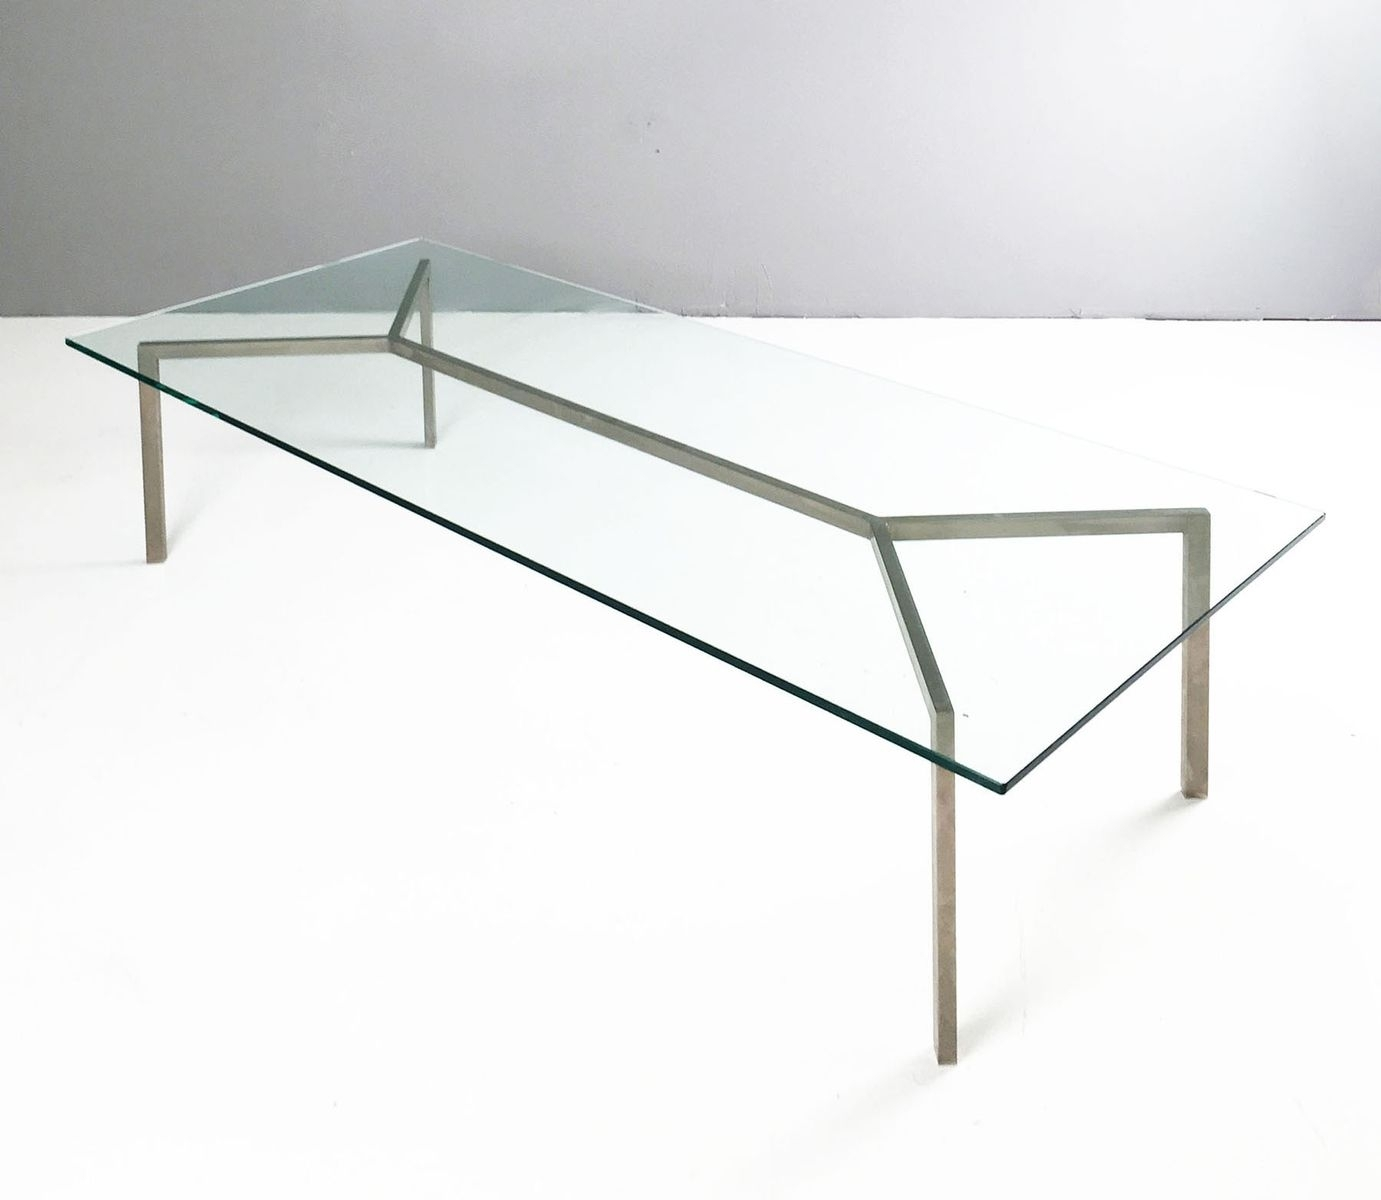 Minimalist Glass & Chrome Coffee Table, 1960S For Sale At Pamono with regard to Minimalist Coffee Tables (Image 21 of 30)